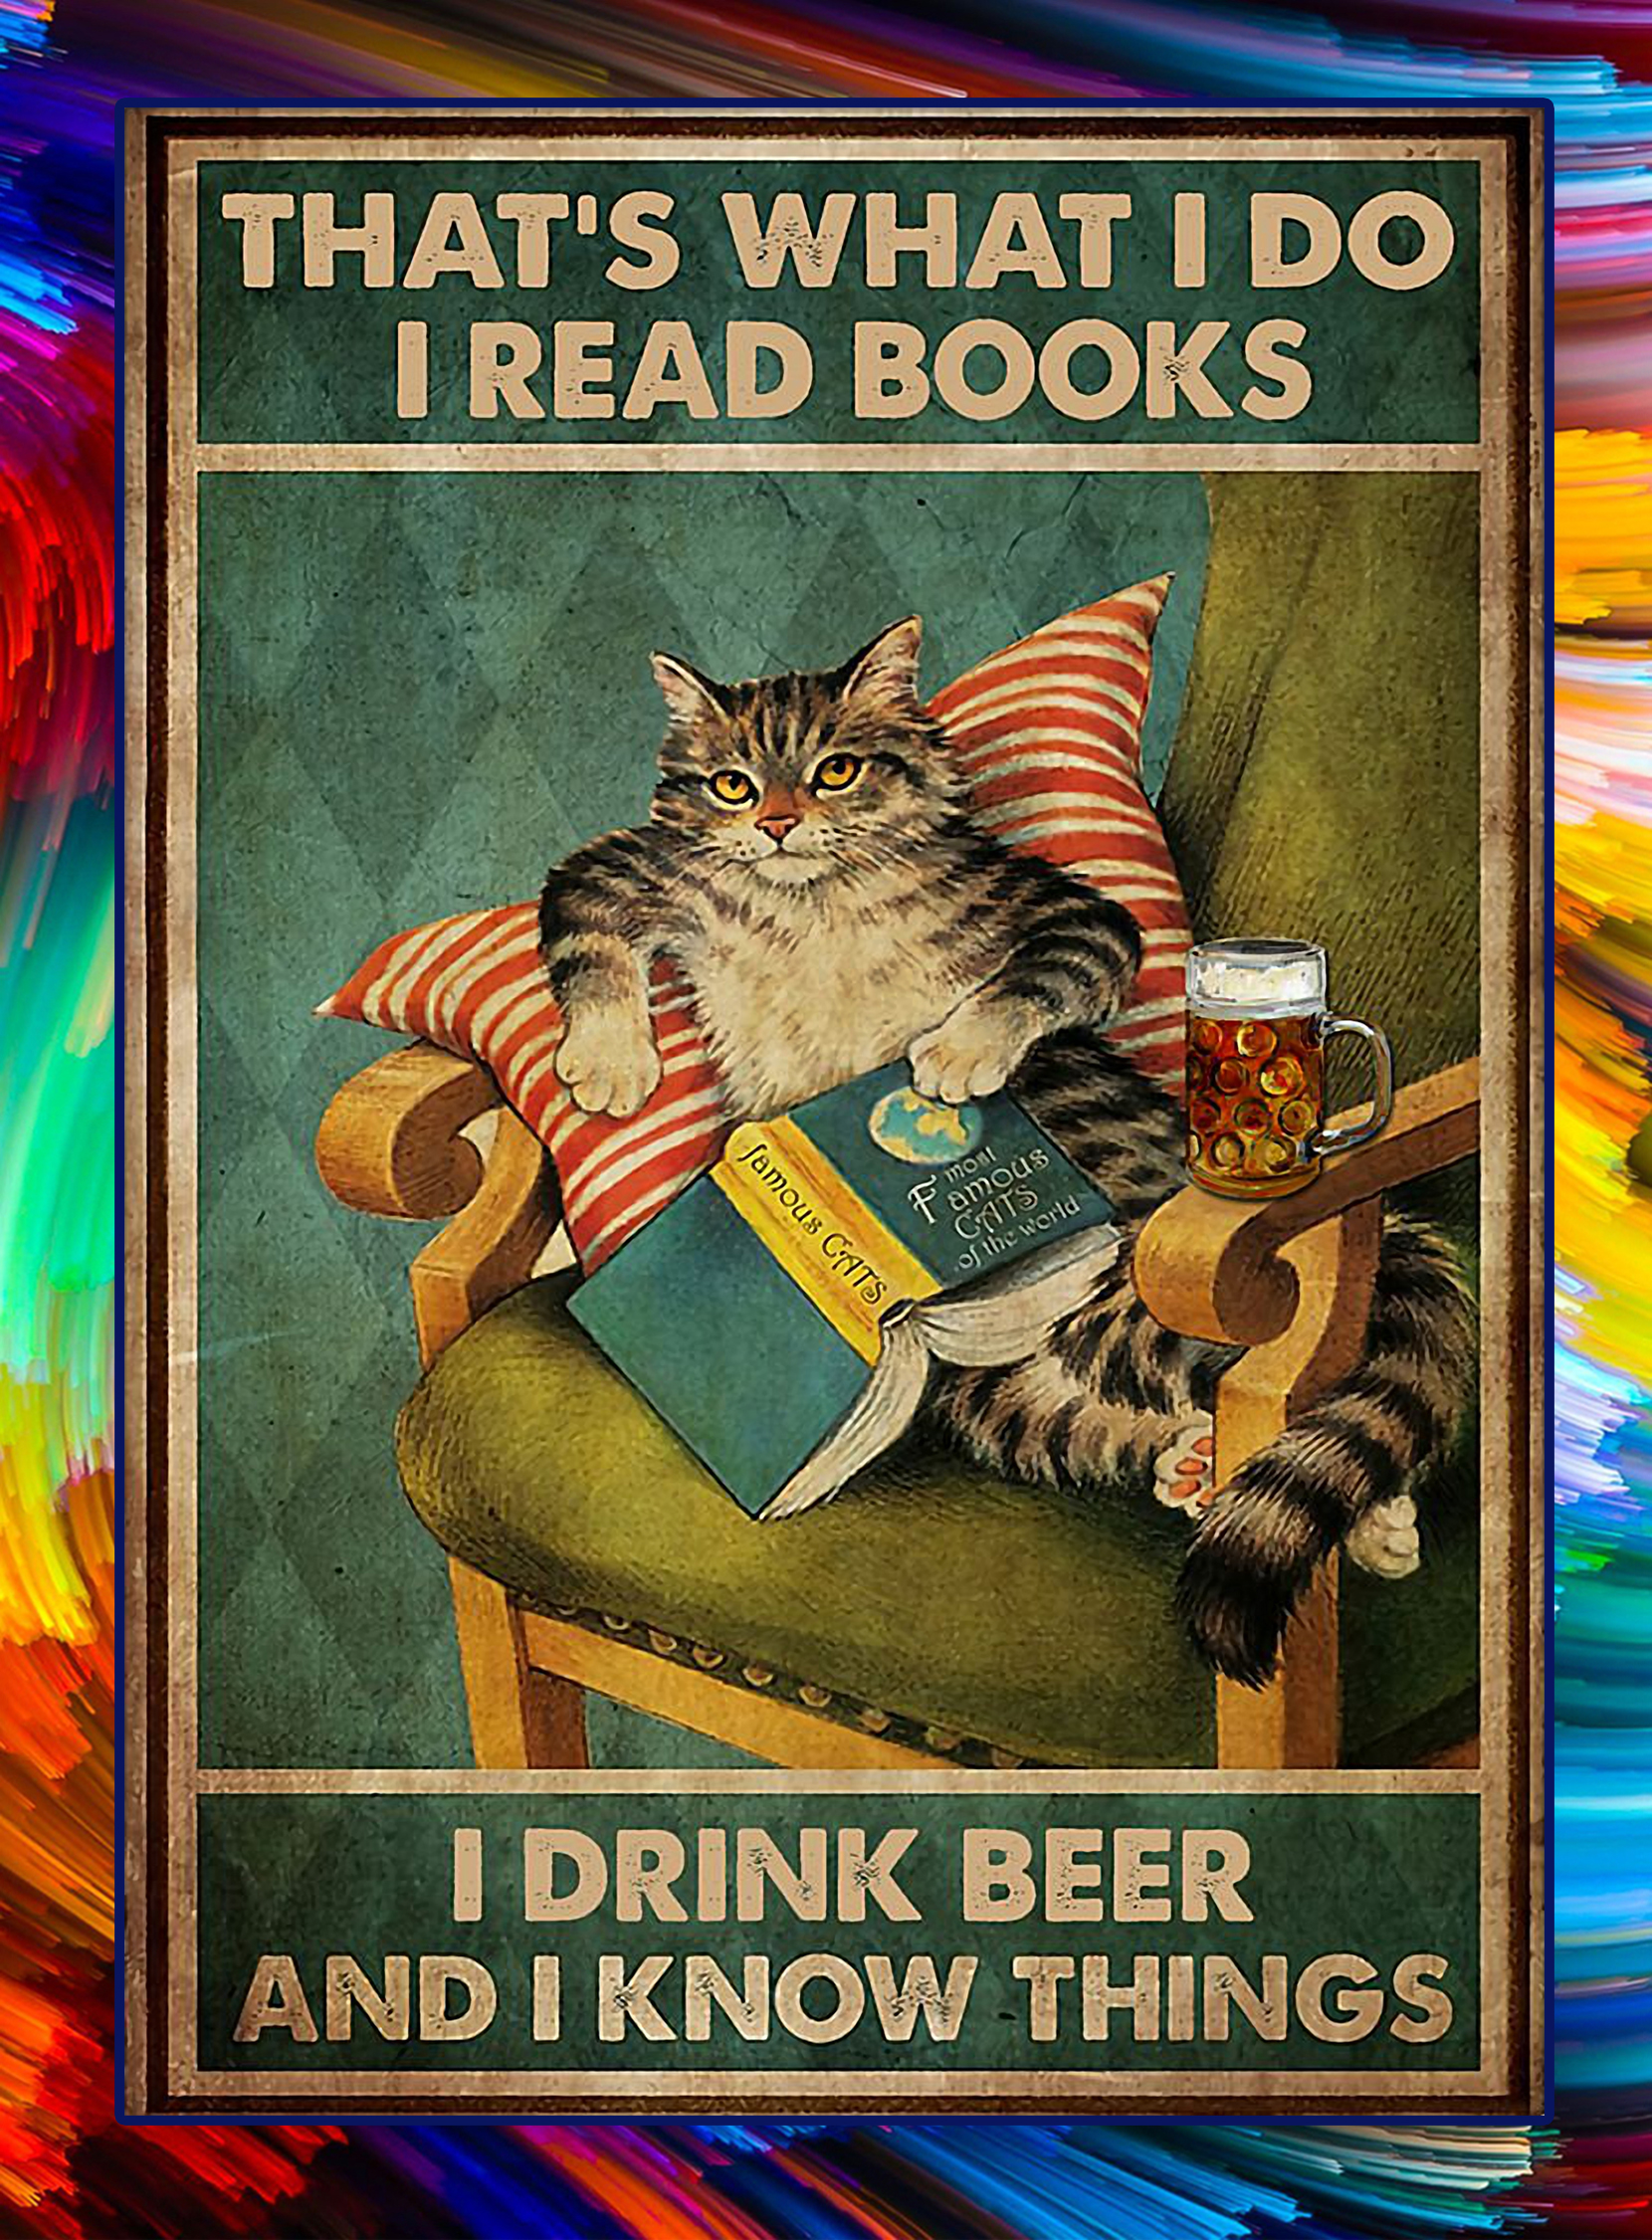 Cat that's what I do I read books I drink beer and I know things poster